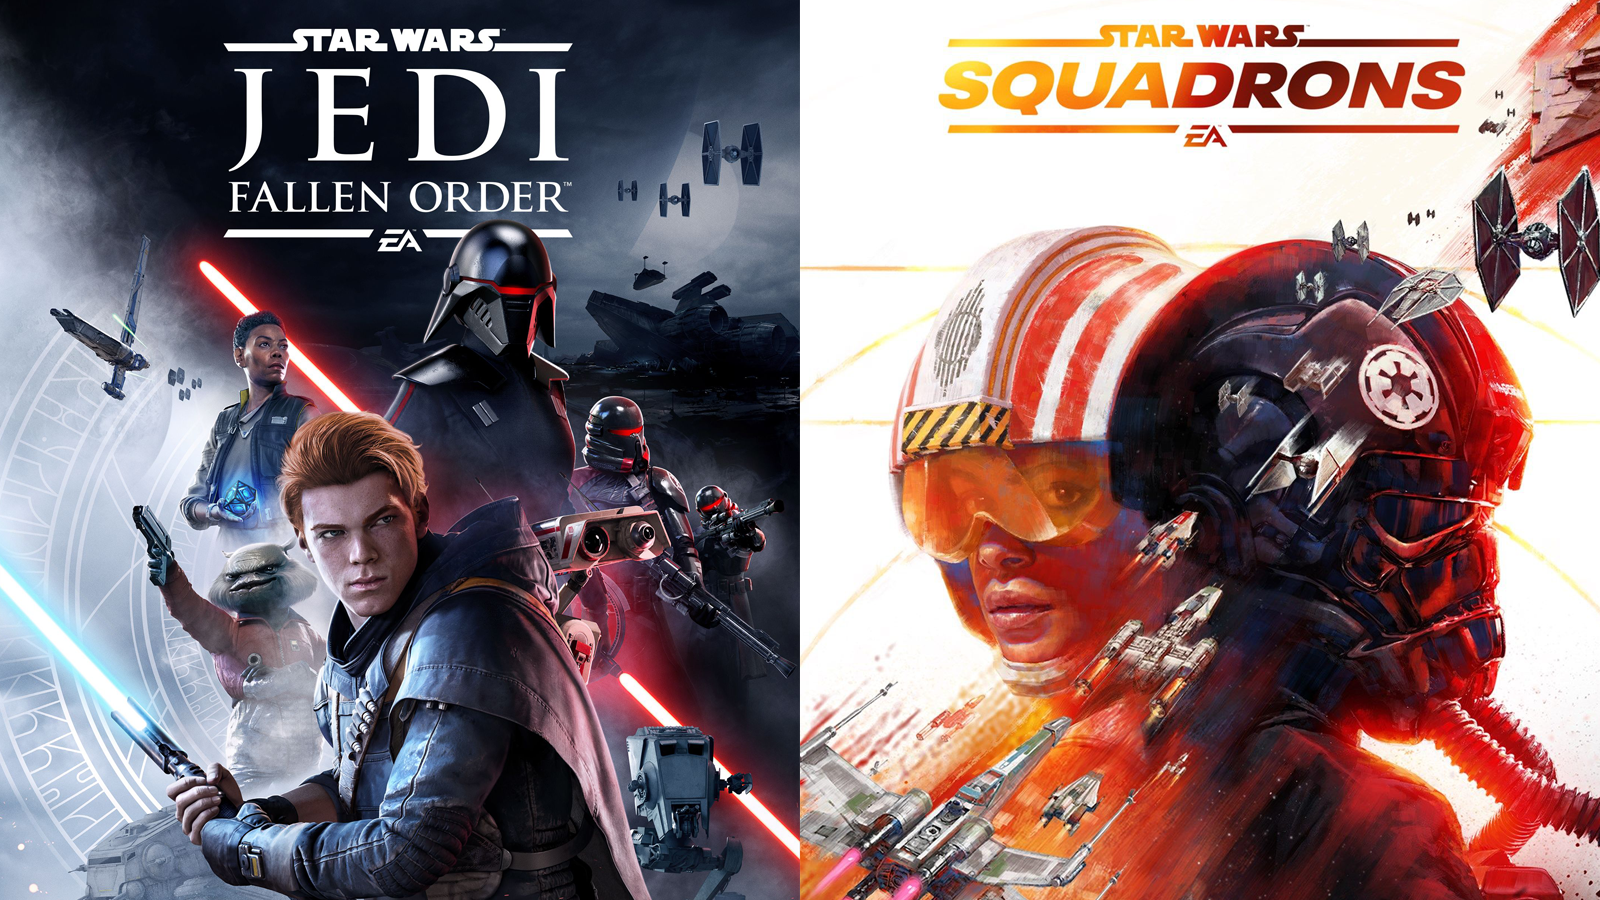 Star Wars Jedi: Fallen Order, and Star Wars: Squadrons video game art